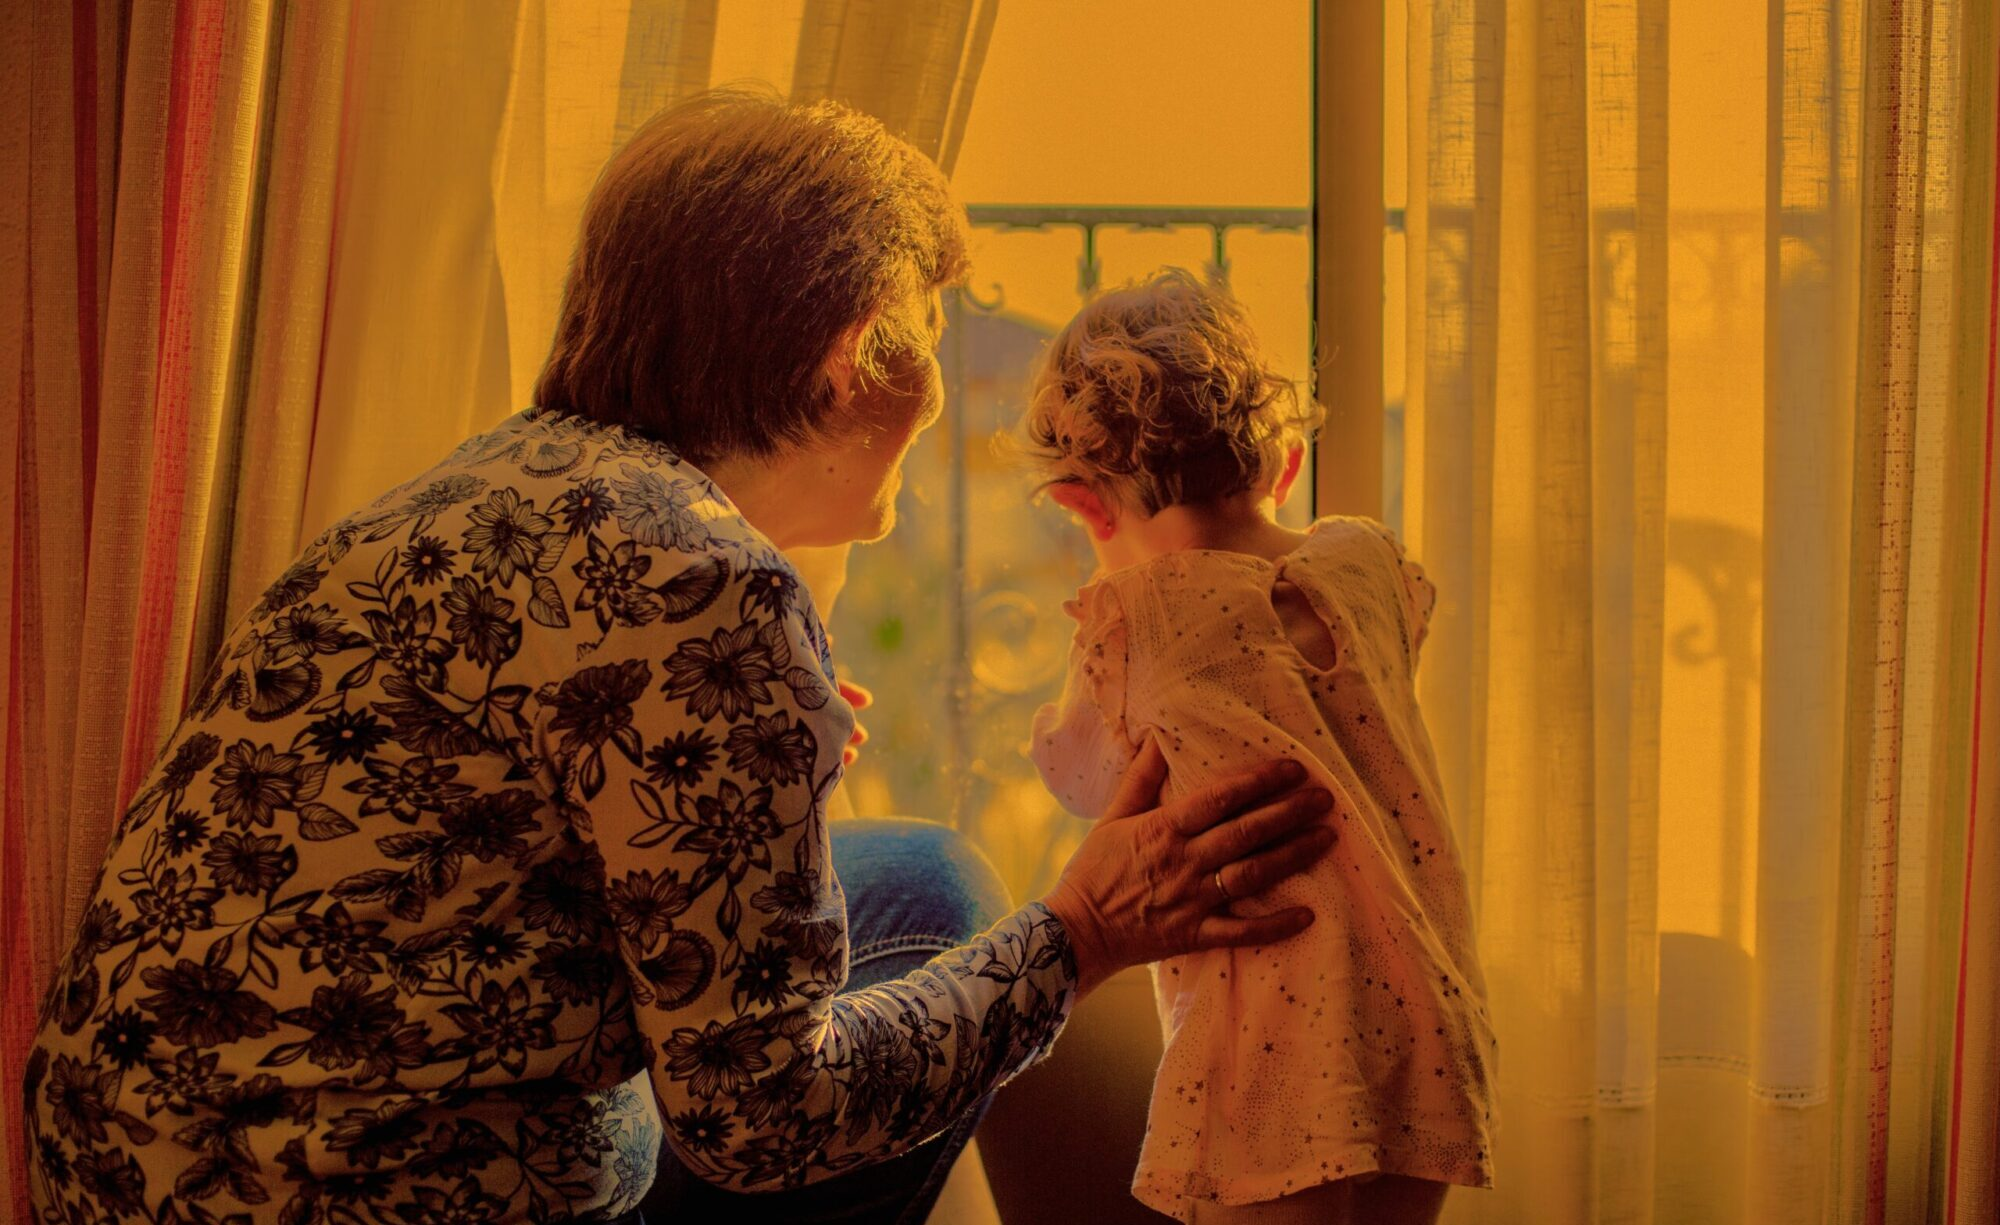 Older woman and toddler look out window